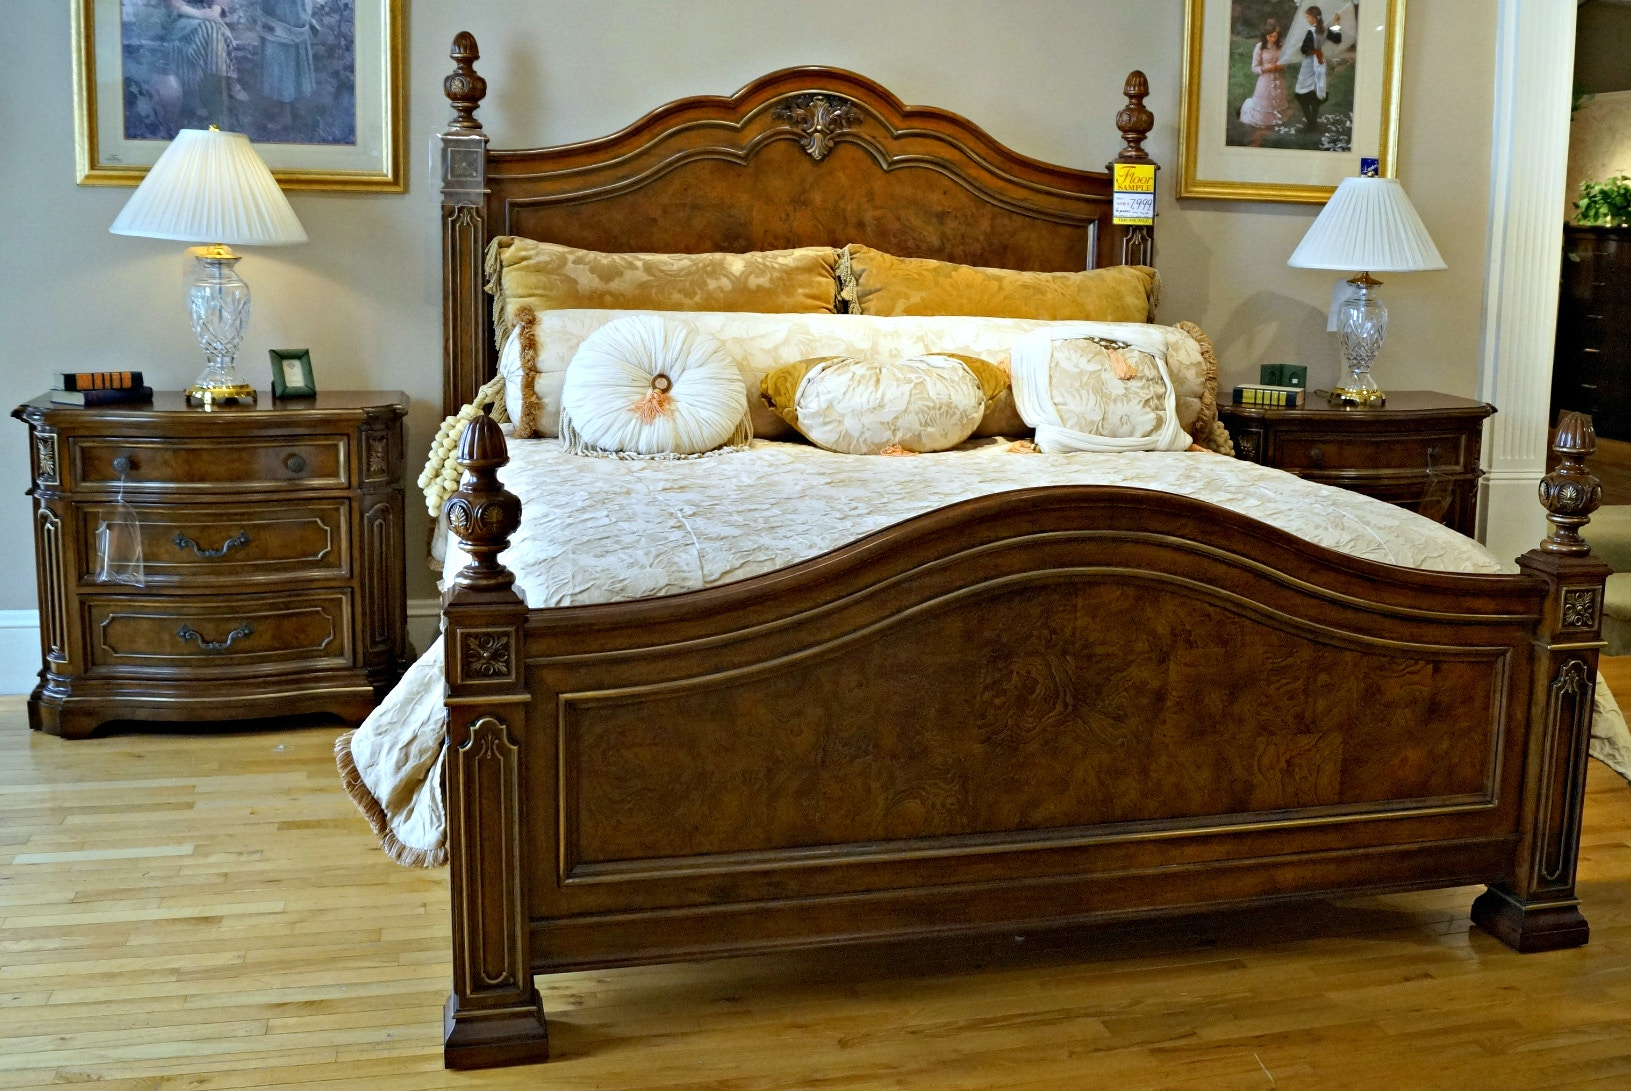 Bedroom CLEARANCE $7,999.00 Plus Delivery Charge (on Clearance Items Only)  Drexel Heritage Casa Vita